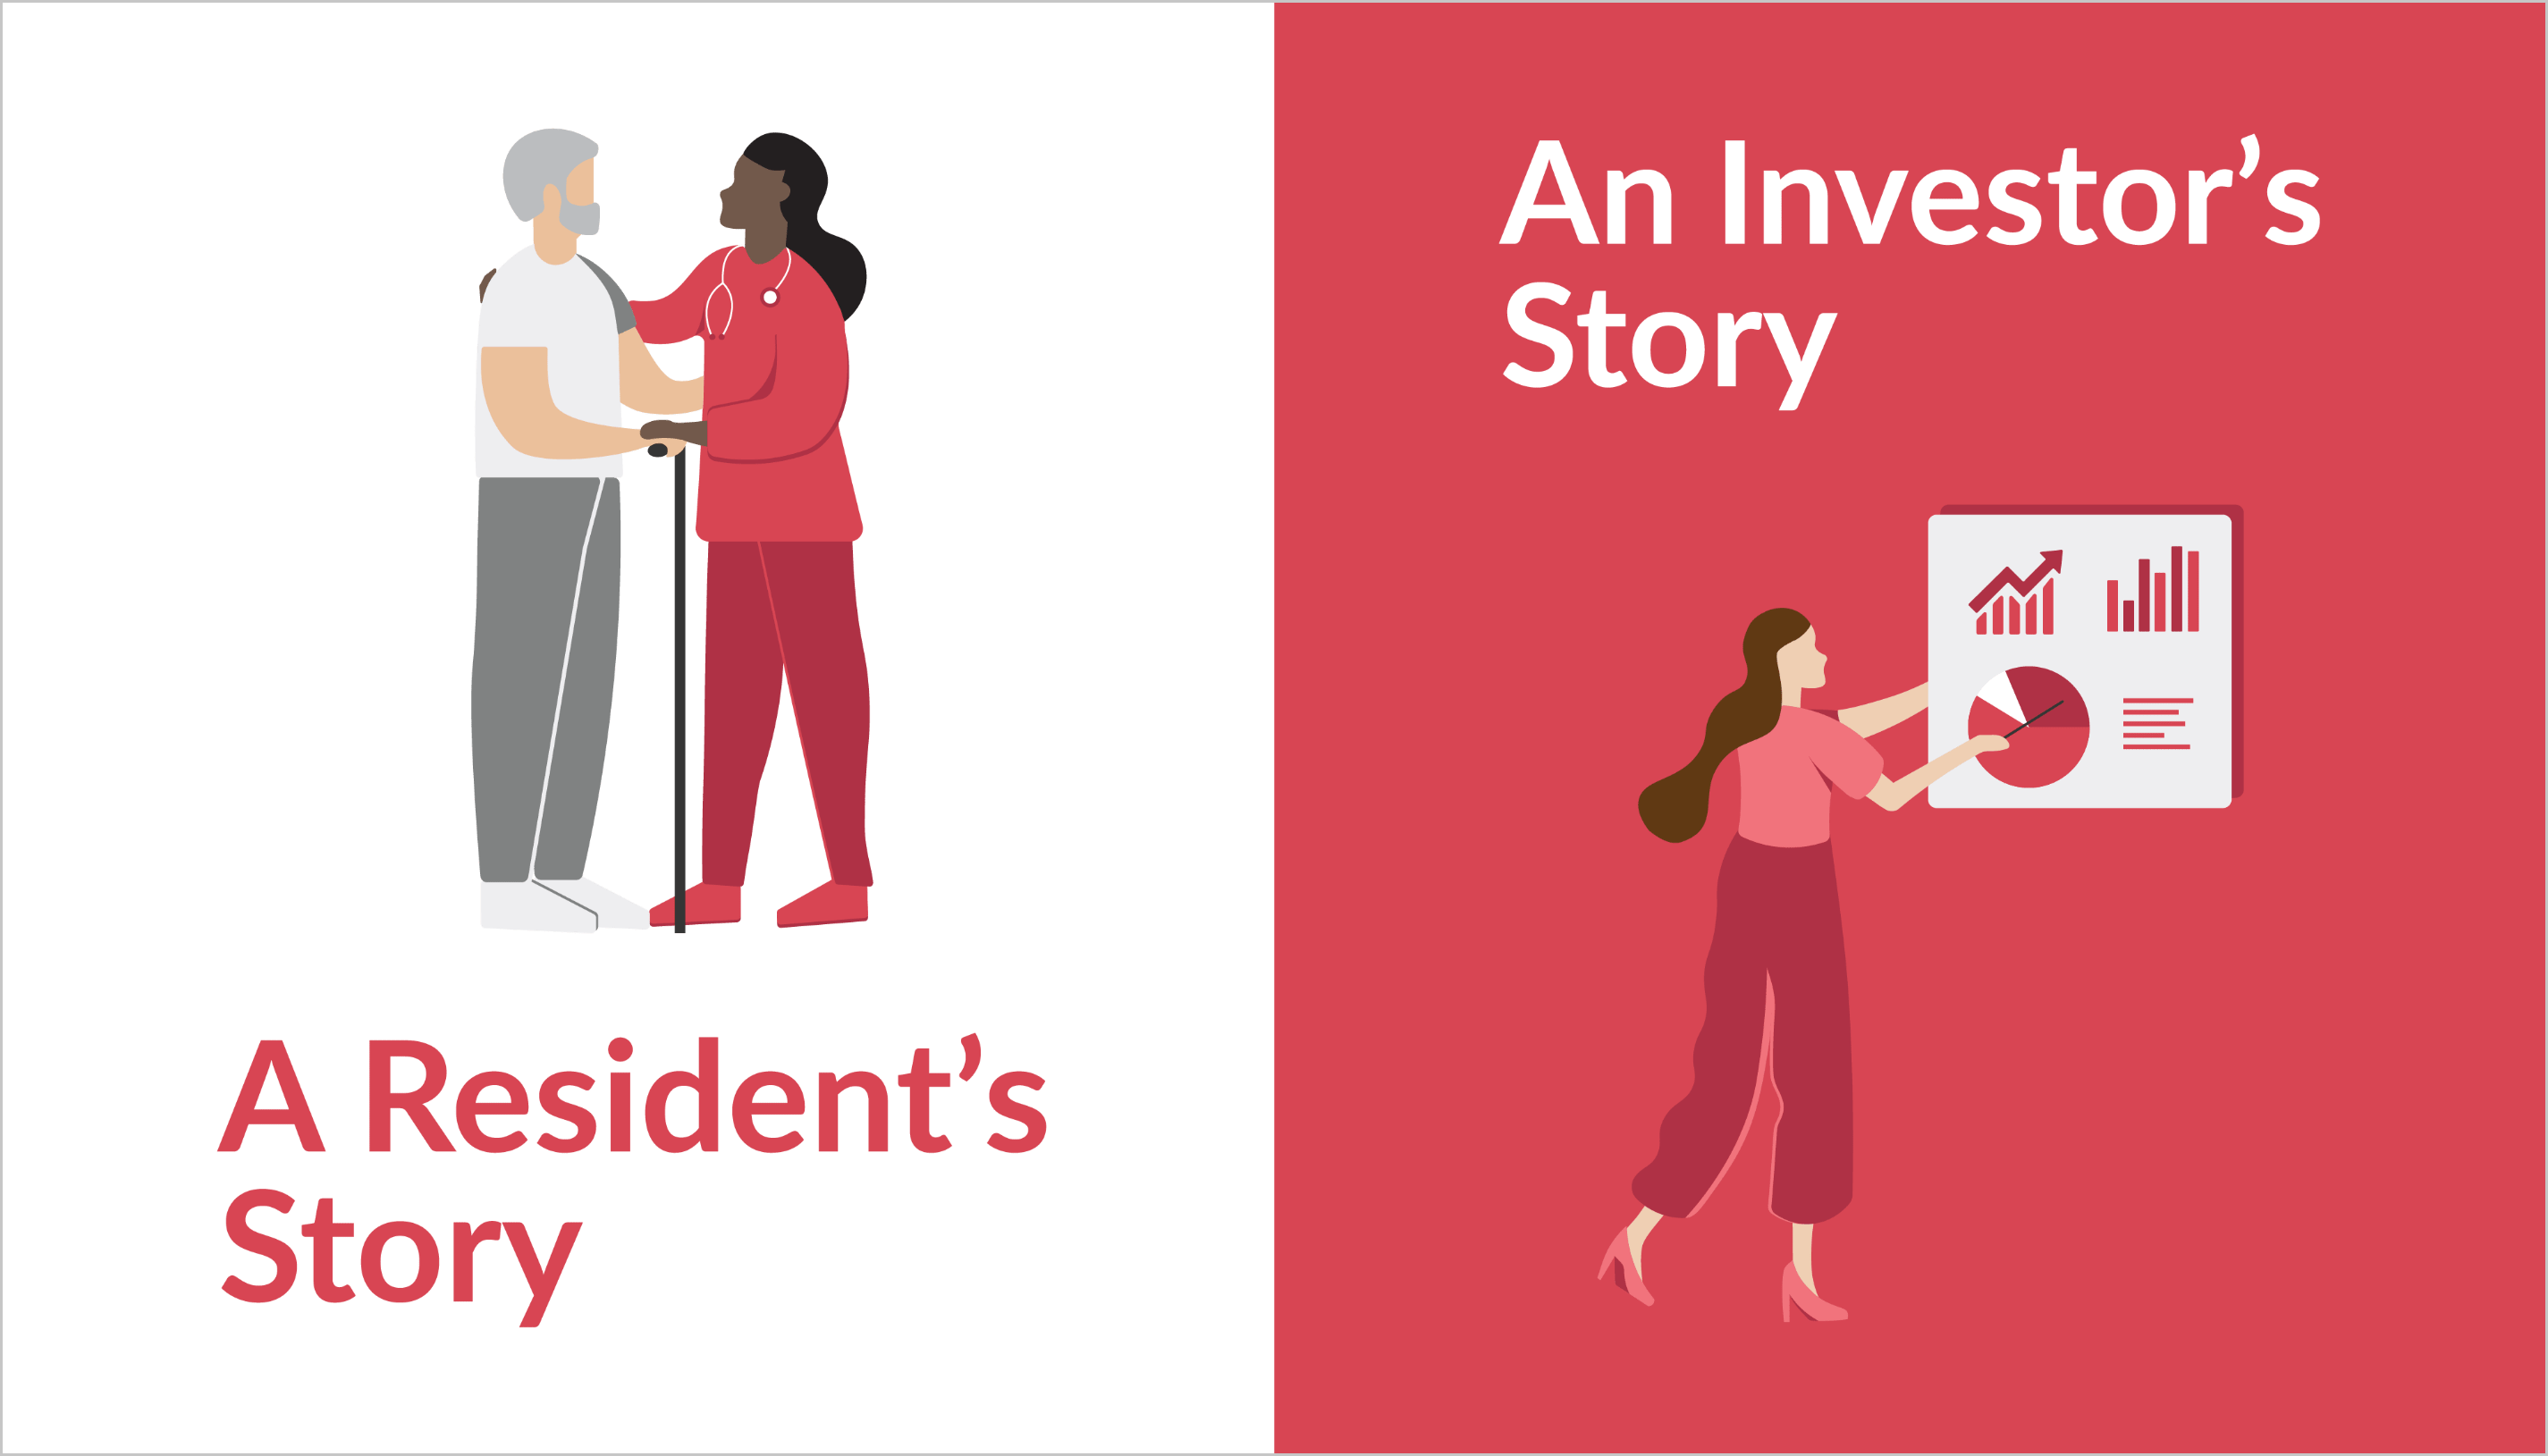 Animated image showing a residents story and an investors story together